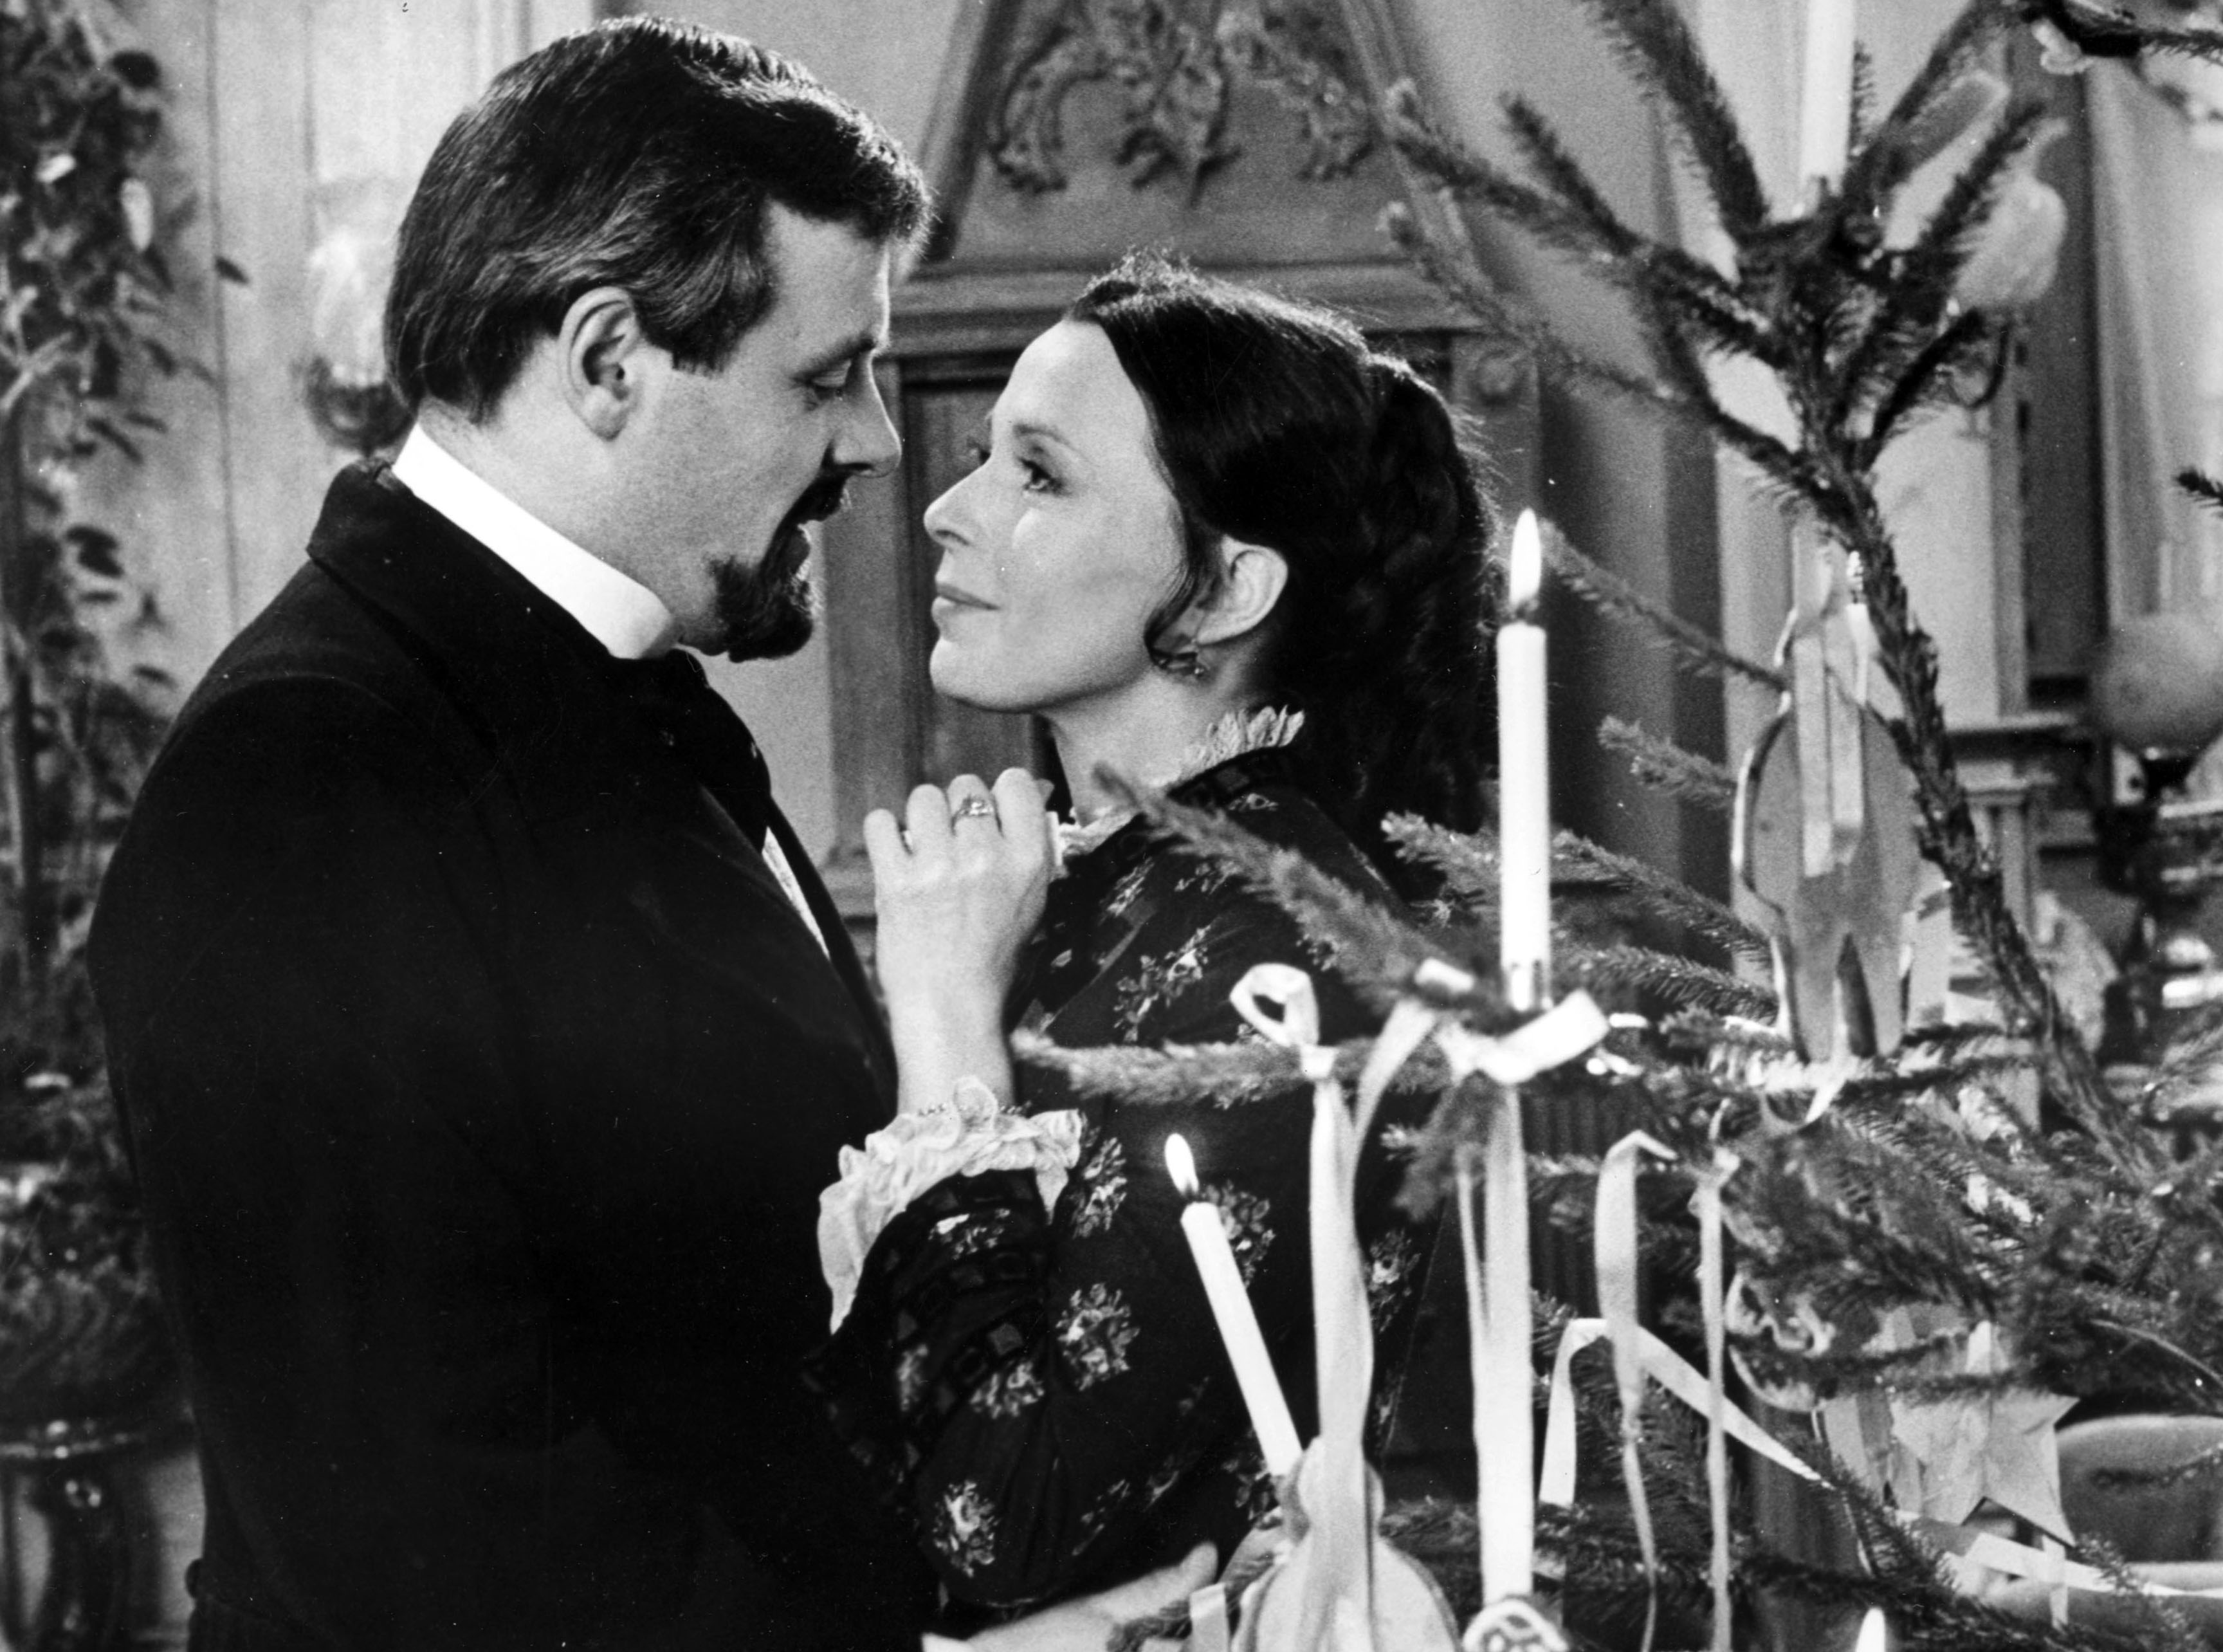 Anthony Hopkins and Claire Bloom in Joseph Losey's 1973 film version | © World Film Services/Films La/REX/Shutterstock